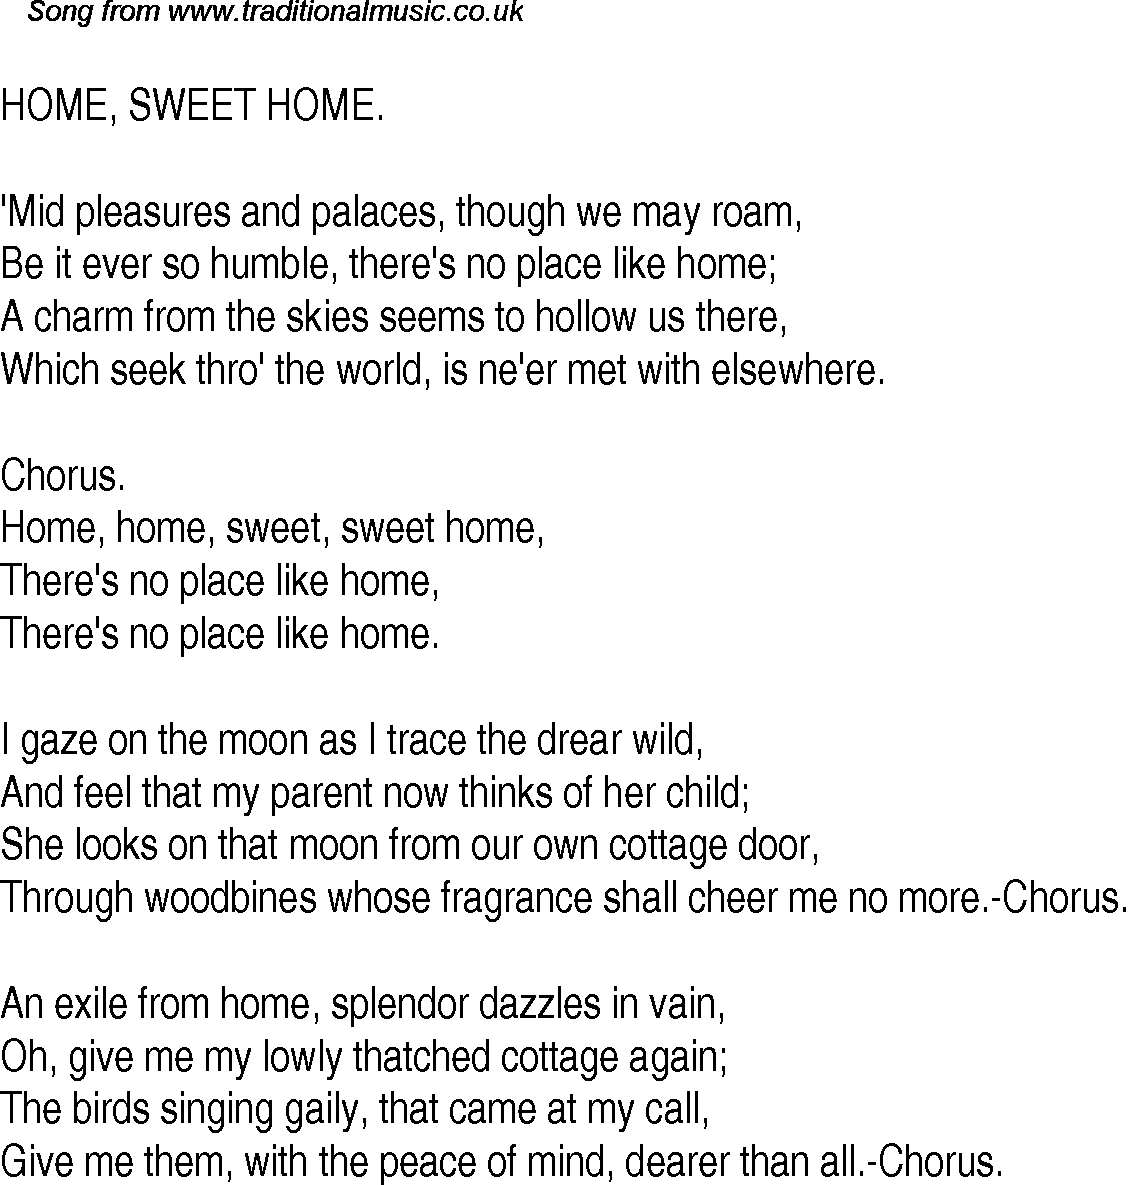 American Old Time Song Lyrics: 25 Home, Sweet Home